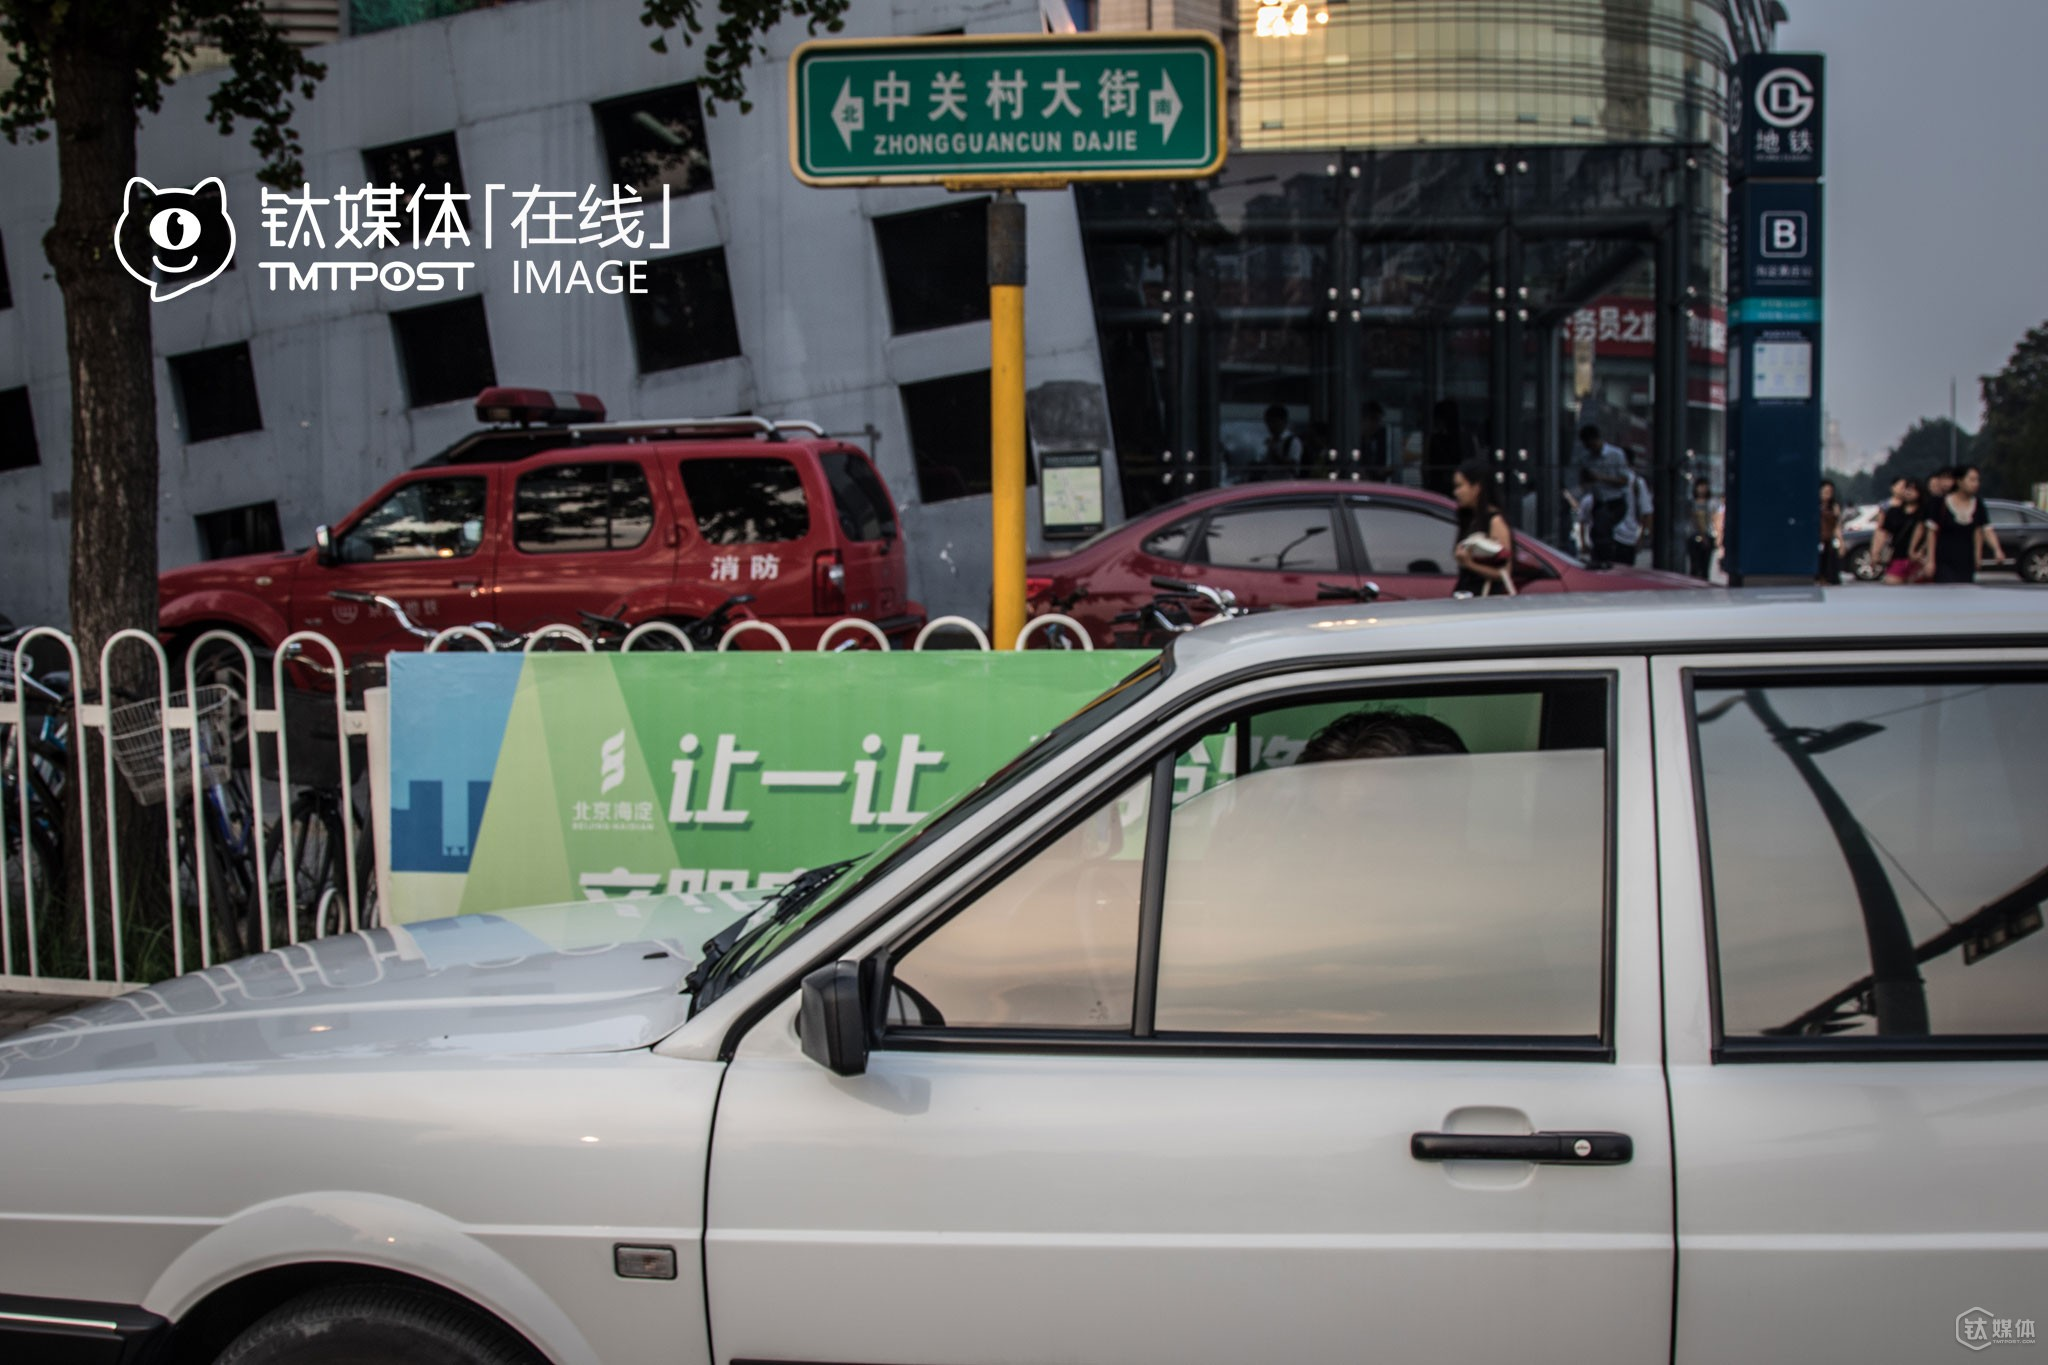 "It was August, 1st. Fangzi was prepared to pick up the next rider. He started as a driver for Yidao, the third largest online-hailing service (the second largest after the merger) in China. At present, he mainly pick up riders on Didi and Uber. However, he was added to Didi's driver blacklist in July. ""When Didi was just launched, they invited me to sign up on Didi with my Santana car. However, they told me now that my car didn't meet their basic requirement,"" Fangzi told TMTpost. Speaking of the merger, Fangzi thought it was understandable, saying that ""In China, every business tends to end up in monopoly. After all, Uber is a foreign enterprise, so the Chinese government will show preference to Chinese companies instead of foreign ones."""